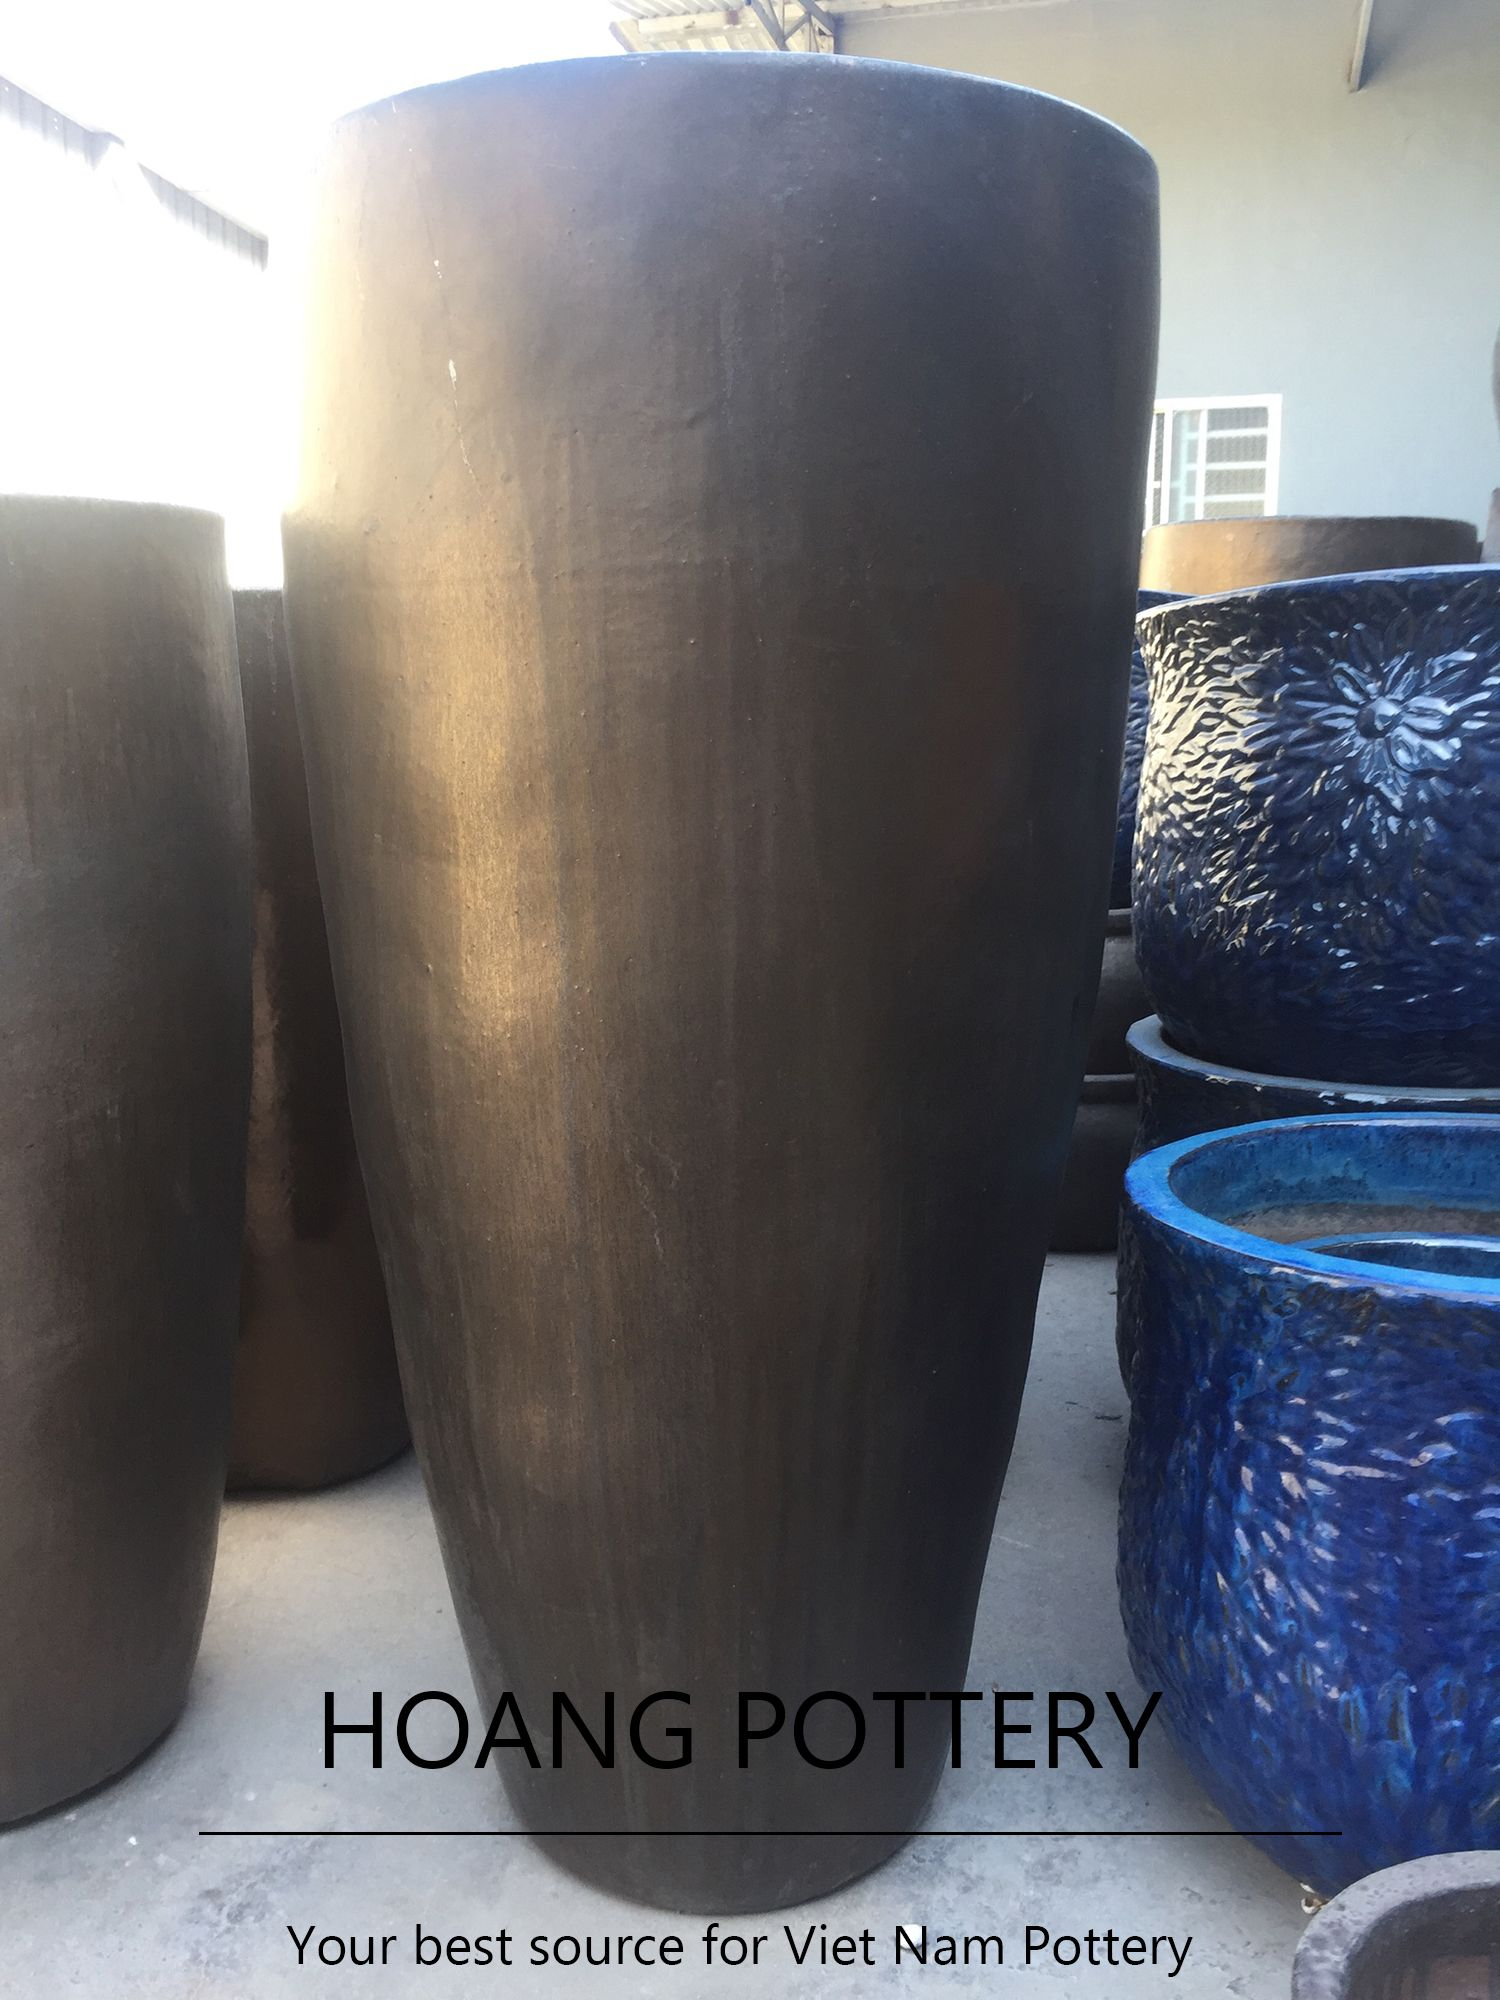 ceramic garden ideal online g outdoor patch decoration ideas water platers oval pottery planters pots metallic with planter white bathroom egg tub tall copper large tight plant and